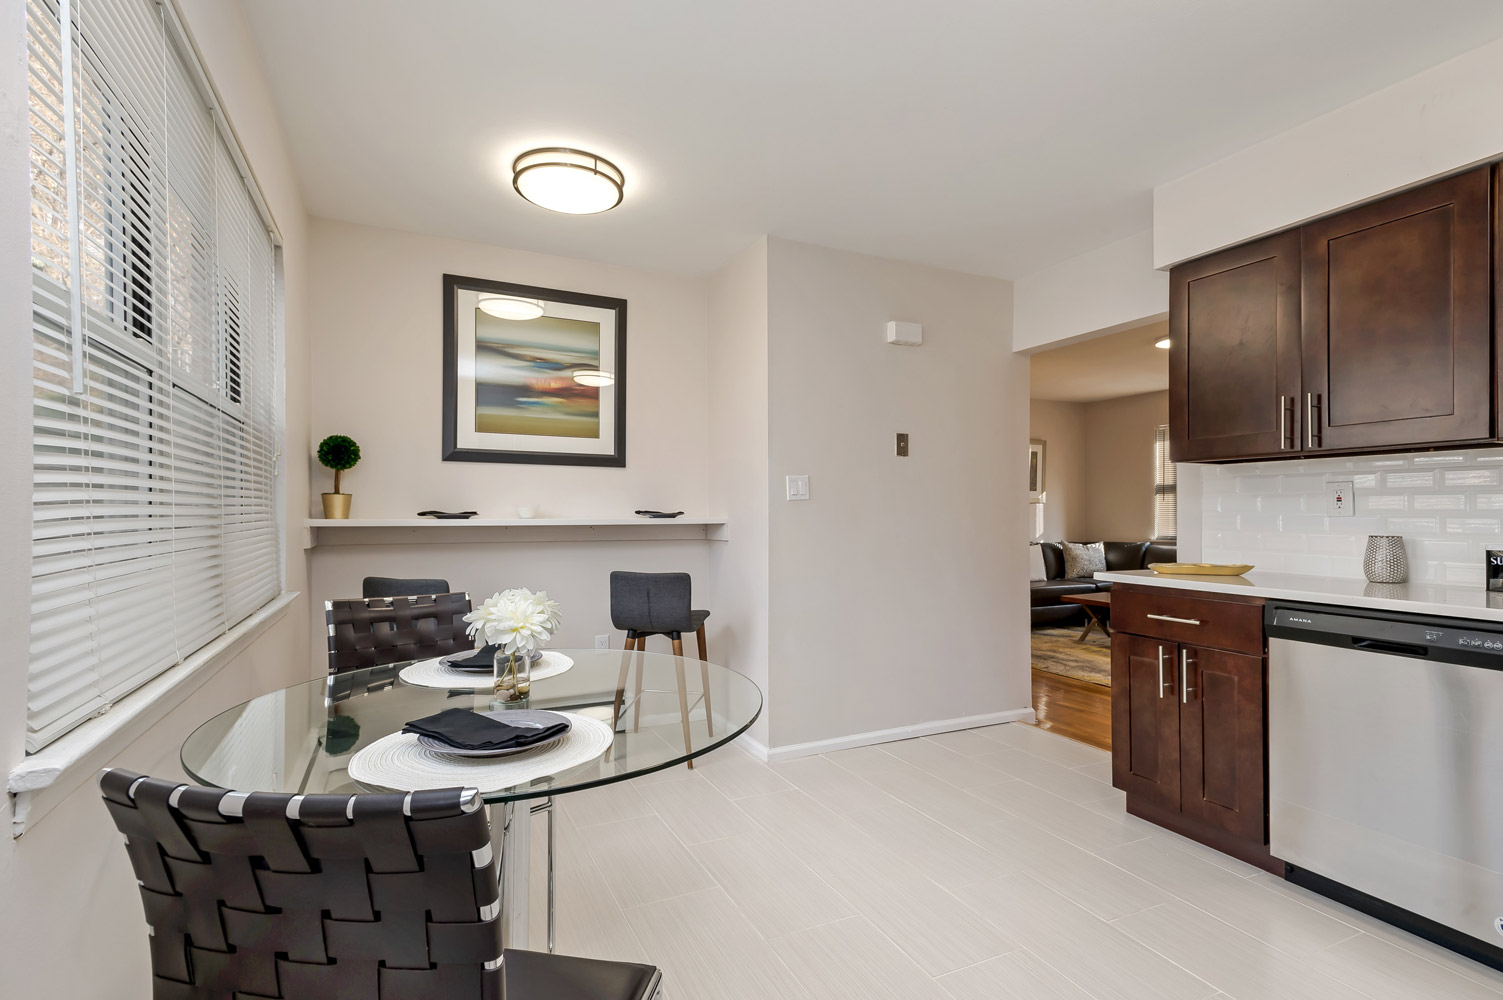 Cabinetry at Grandview Gardens Apartments in Edison, New Jersey